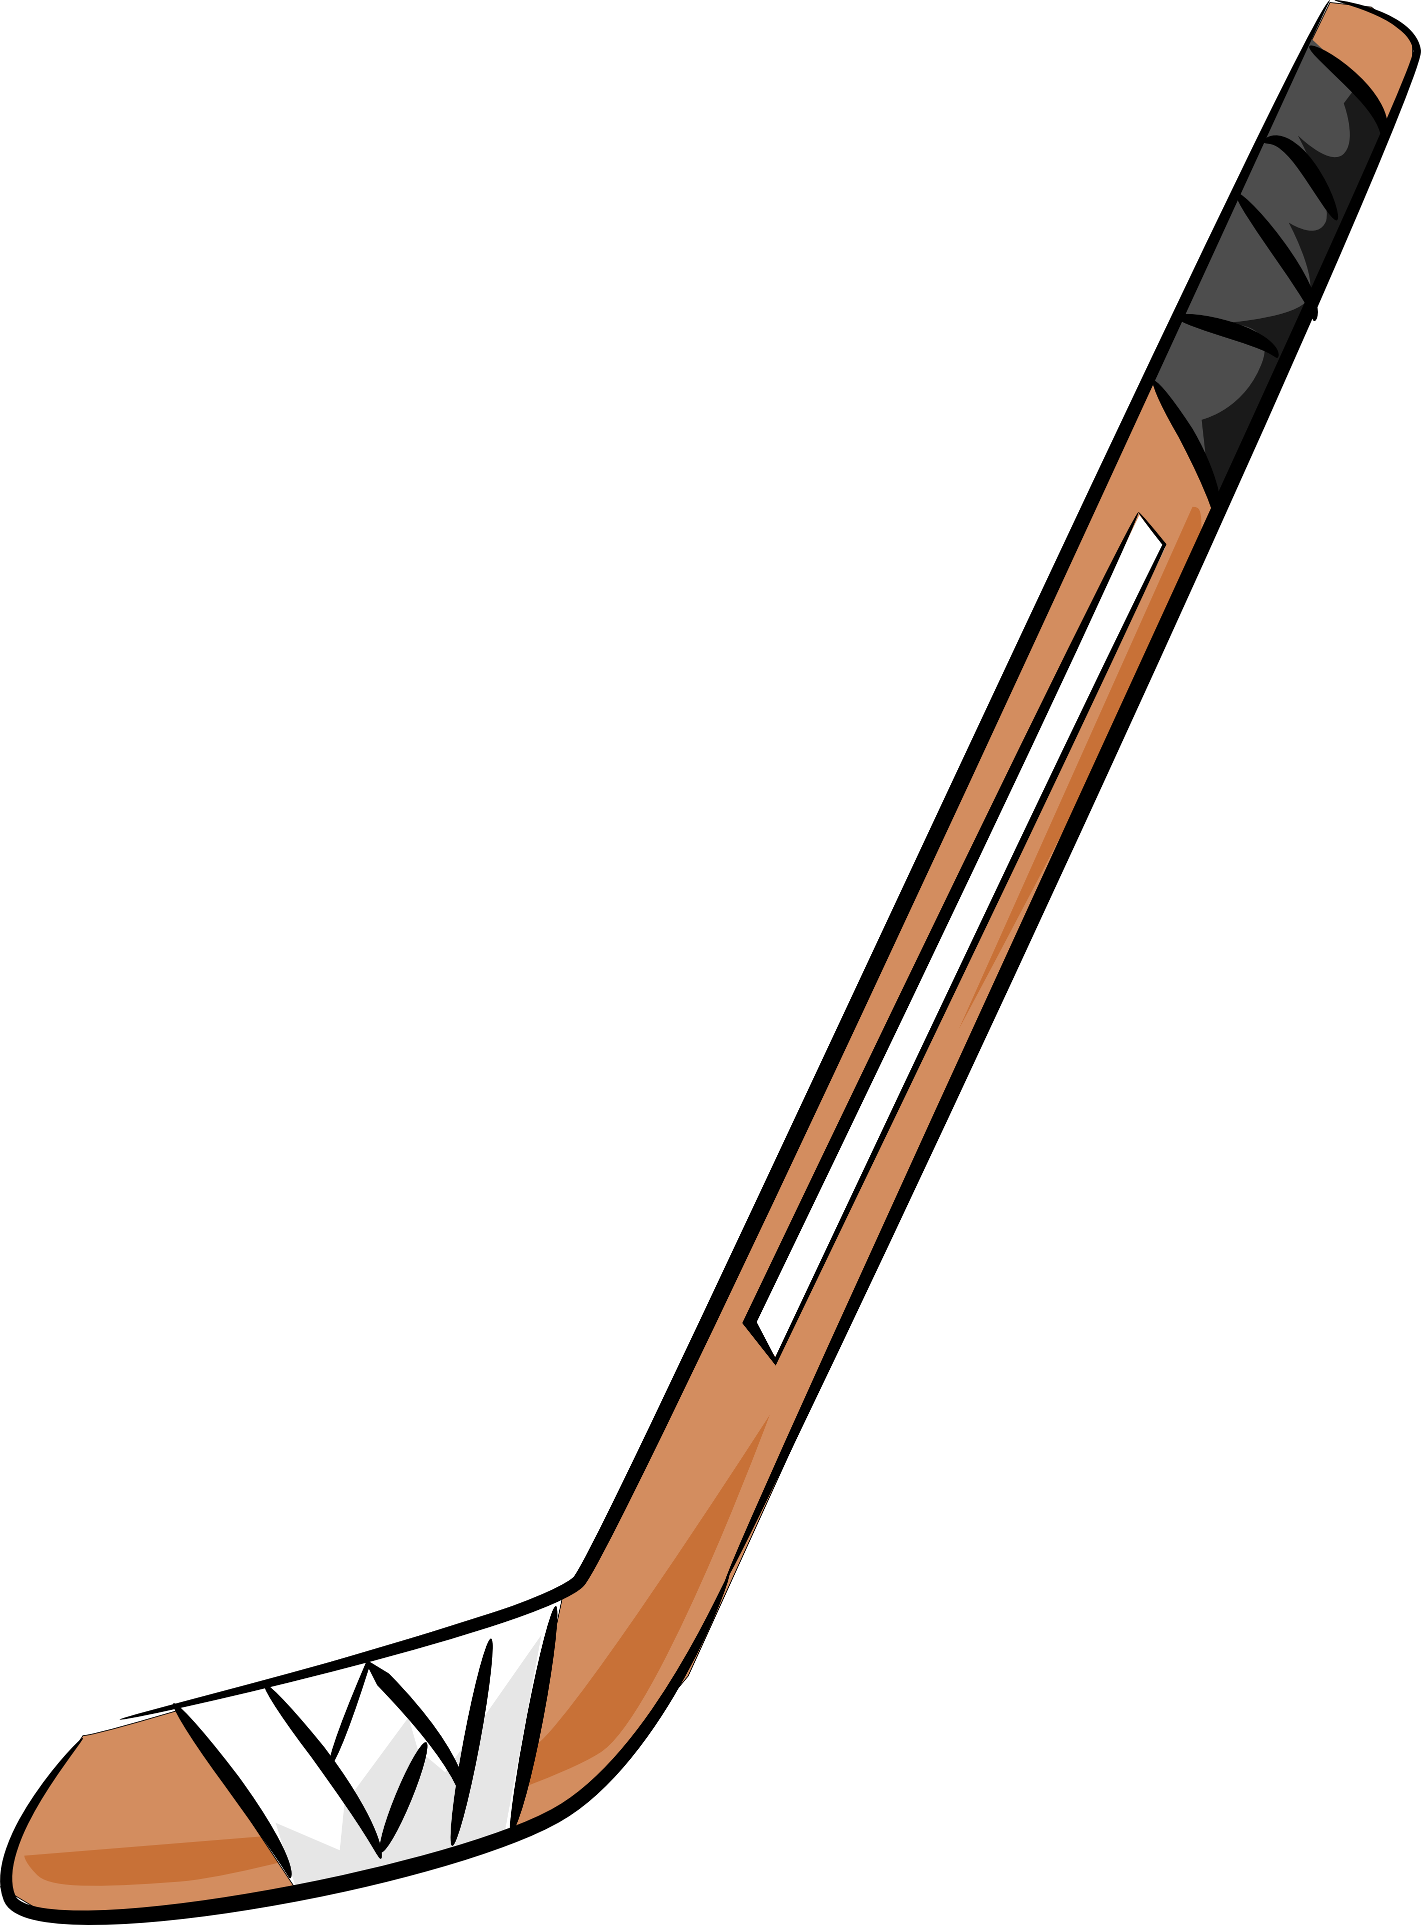 Holiday clipart stick.  collection of hockey